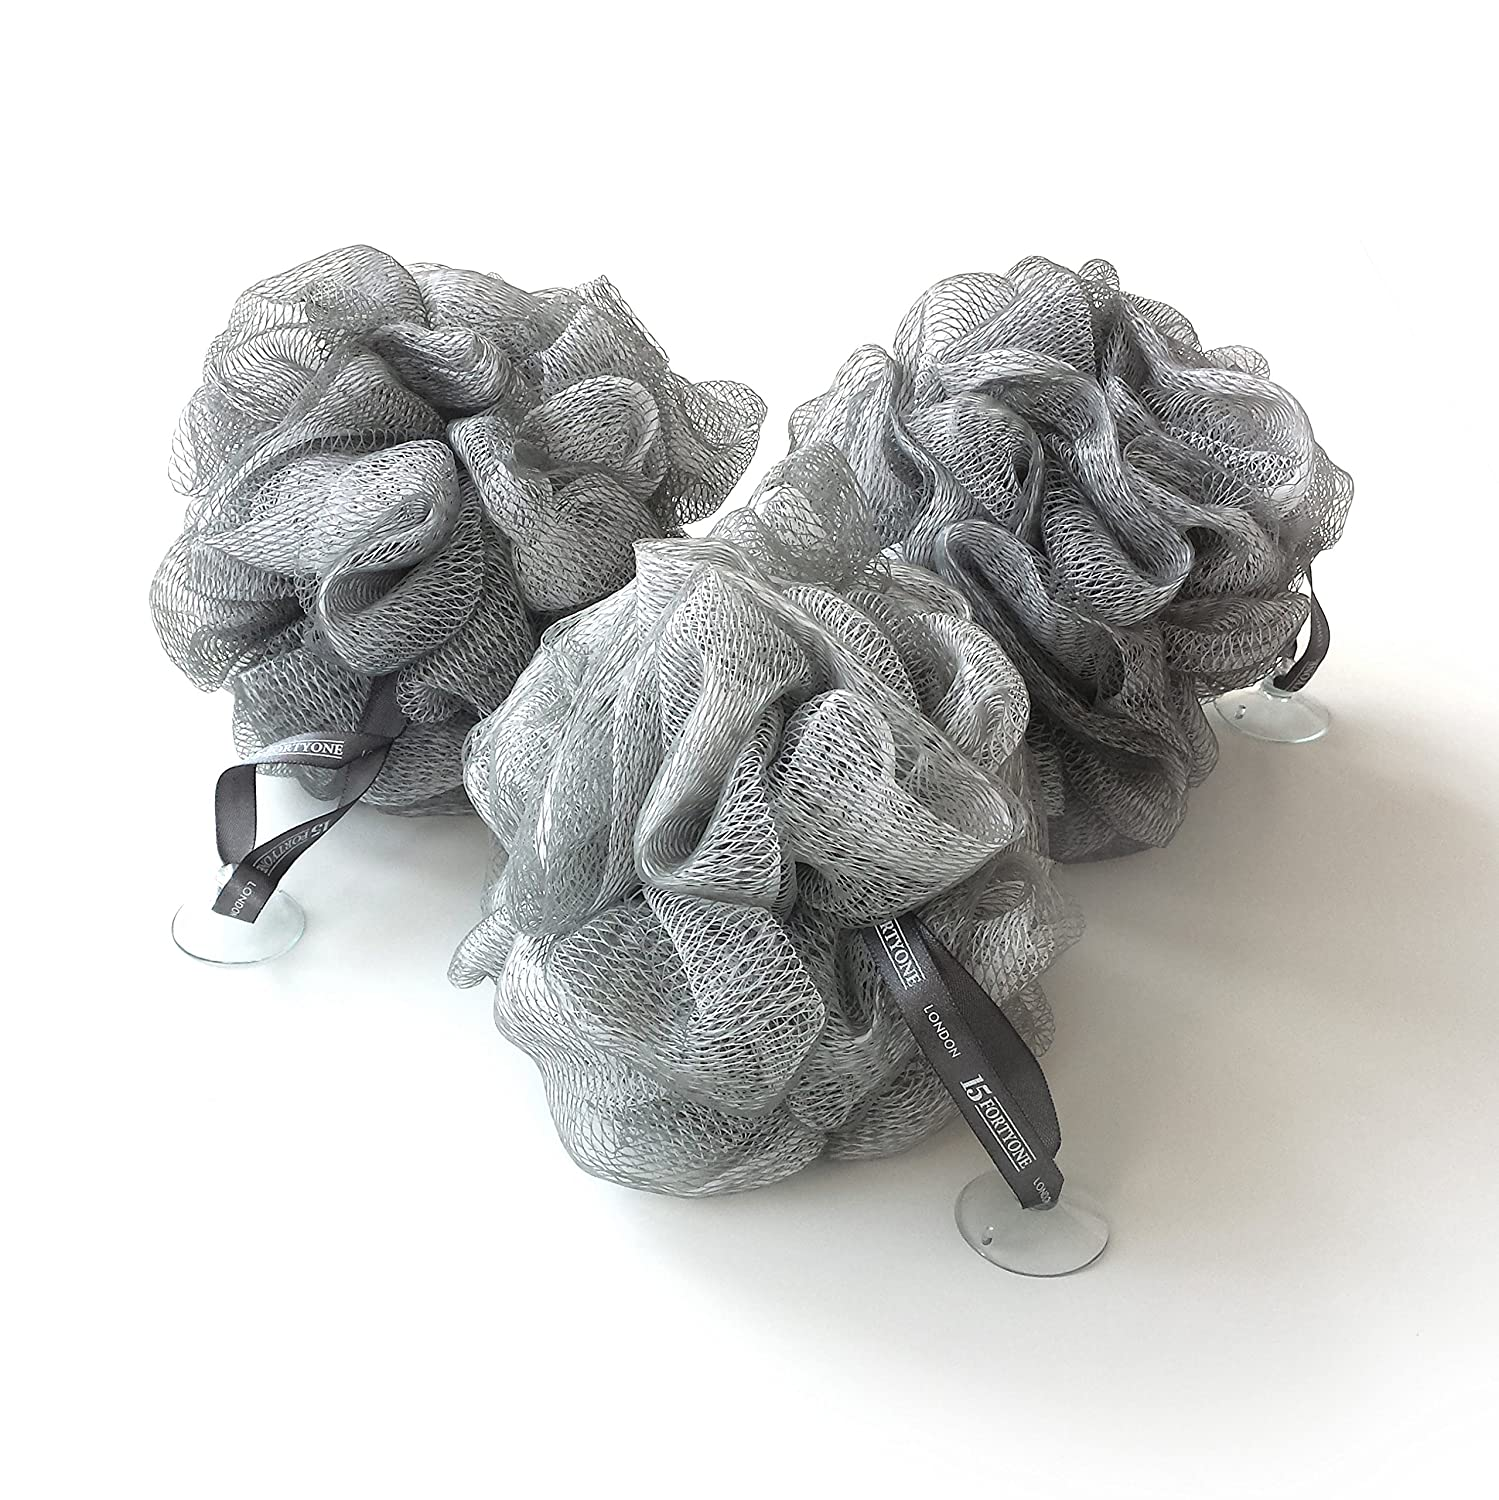 1541 London Exfoliating Bath & Shower Body Puff / Scrunchie / Buffer (Silver Grey) 3 pack